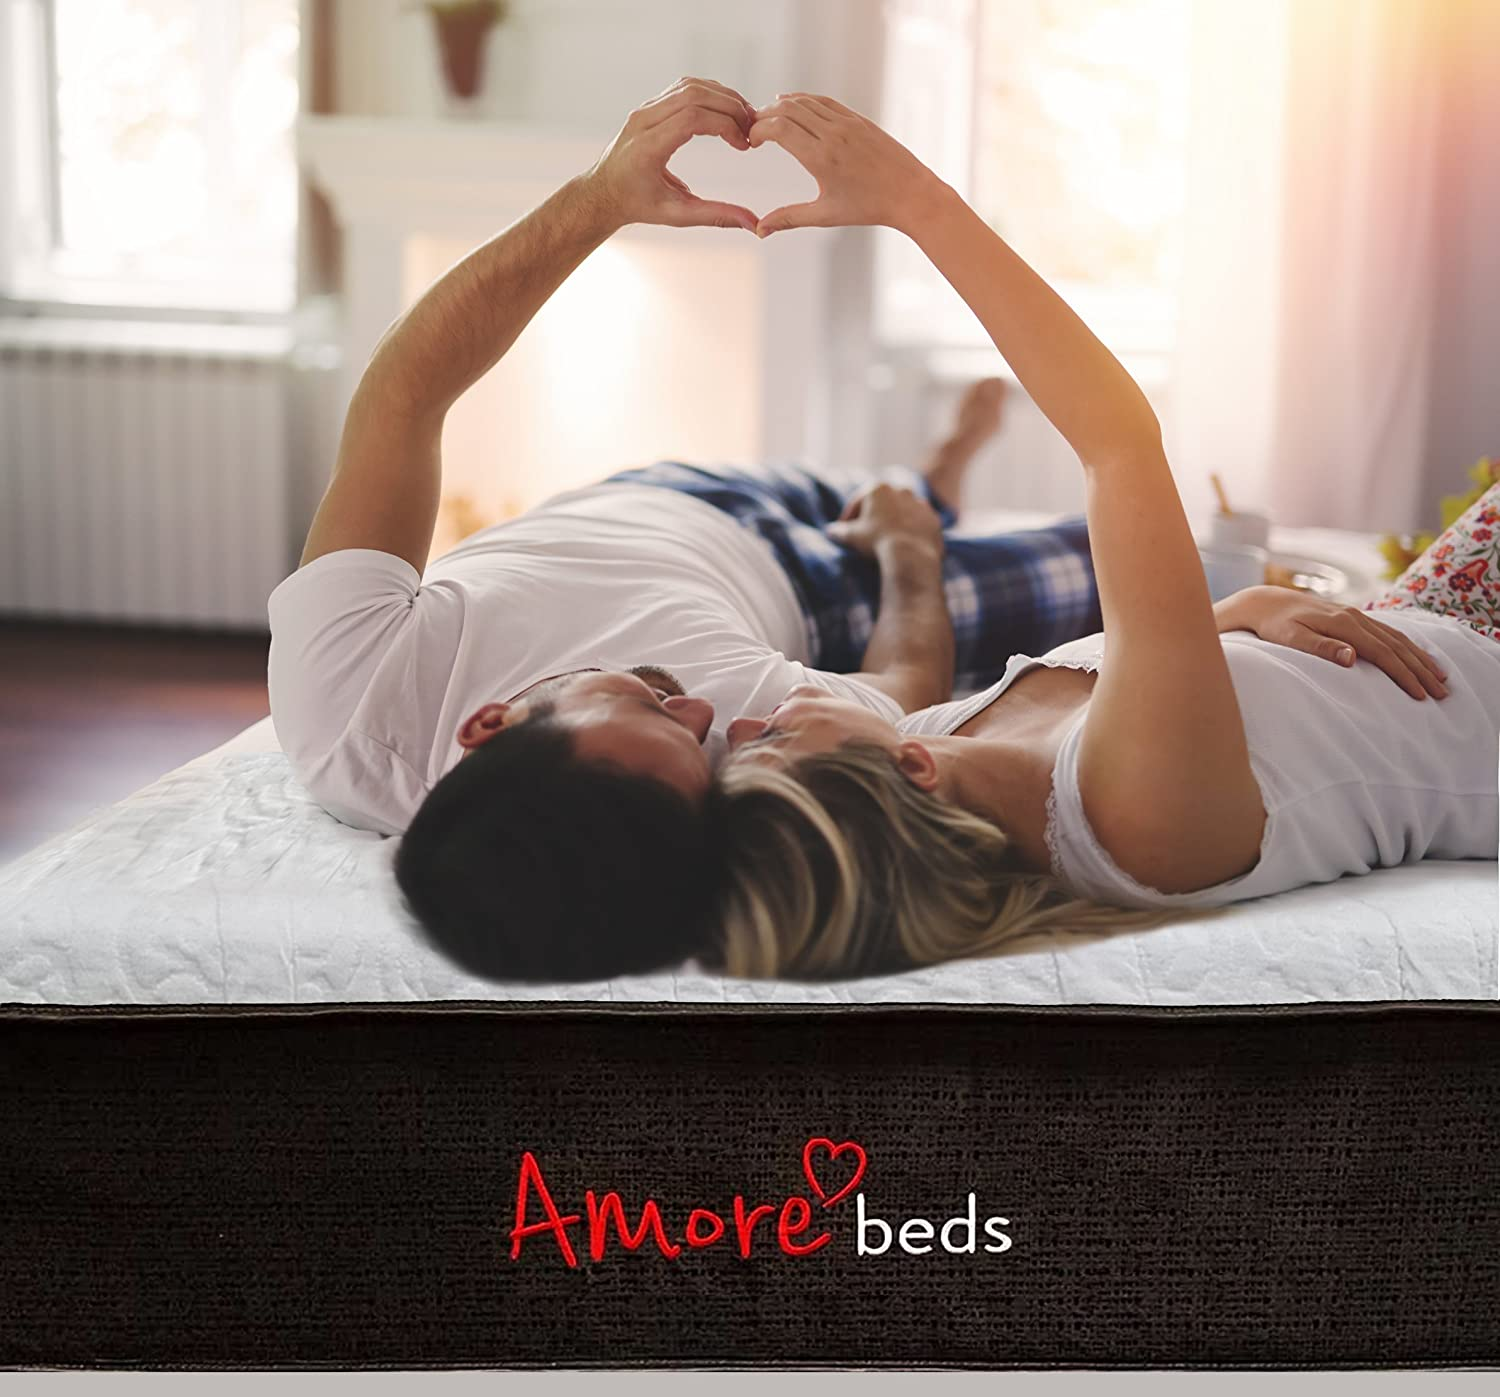 Amazon.com: Amore Beds Best Hybrid Organic Cotton Medium Firmness Mattress (Queen): Kitchen & Dining